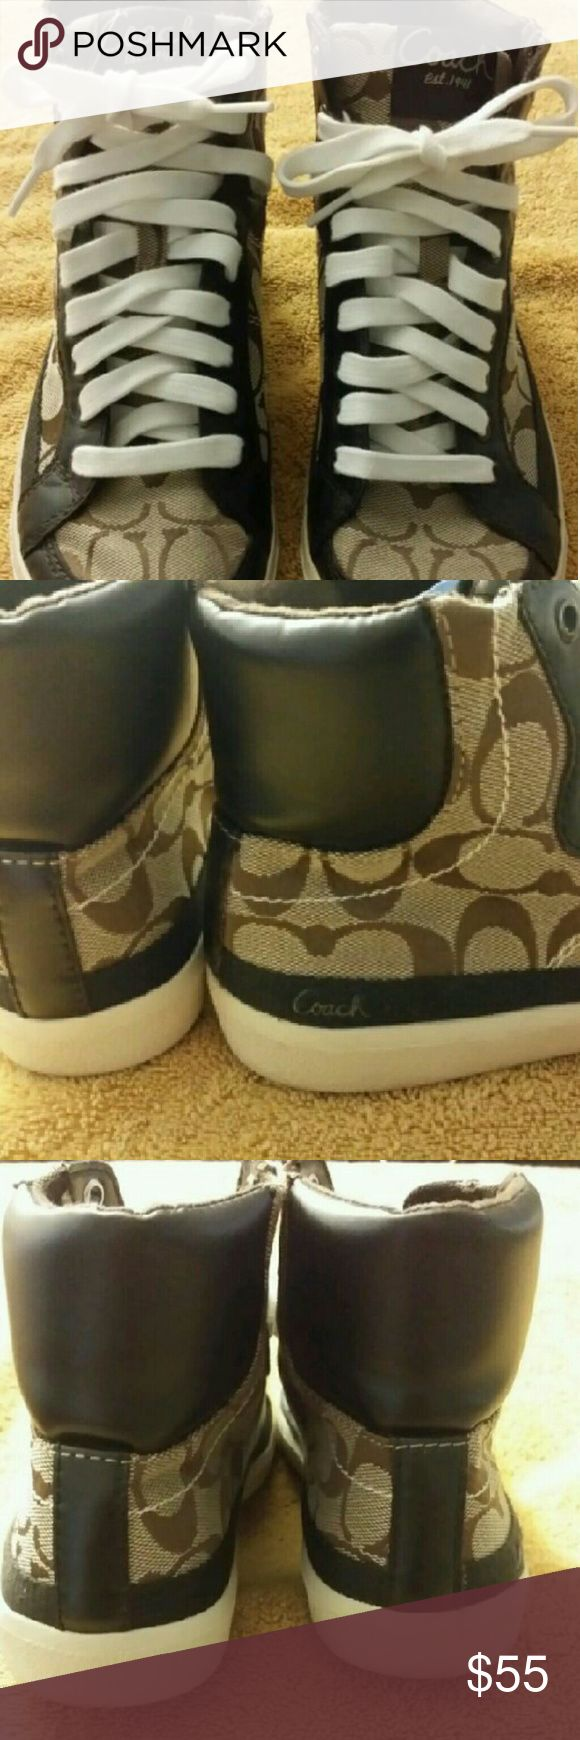 Coach  high tops with leather trim.sneakers Good looking high top Coach sneakers with leather trim. New without tags..size 10 b ladies Ellis signature coach Shoes Athletic Shoes